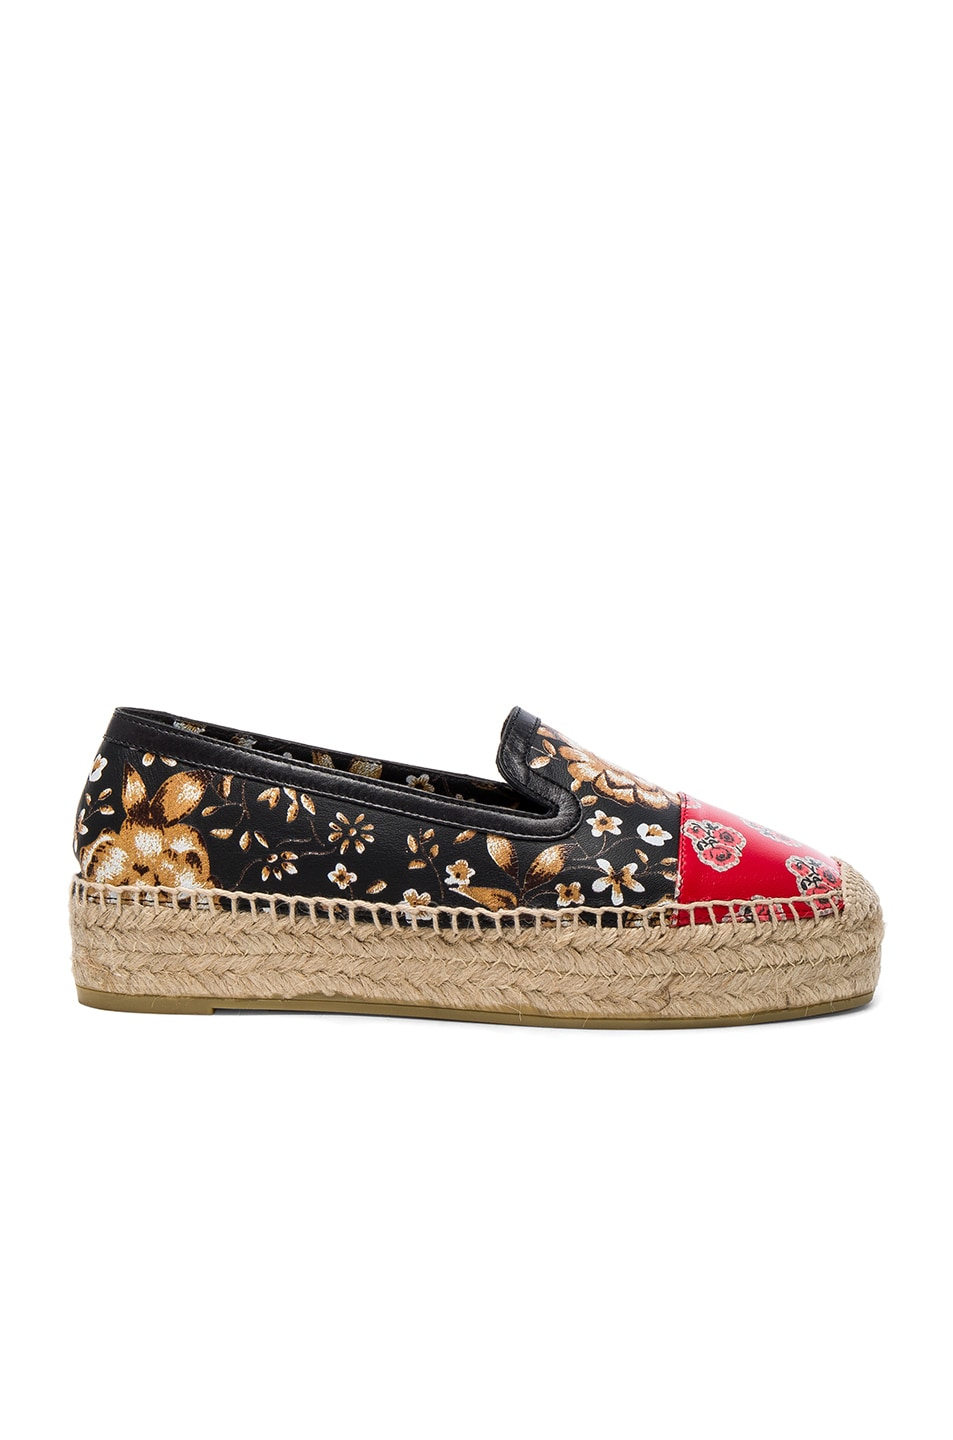 Image 1 of Alexander McQueen Leather Espadrilles in Multi